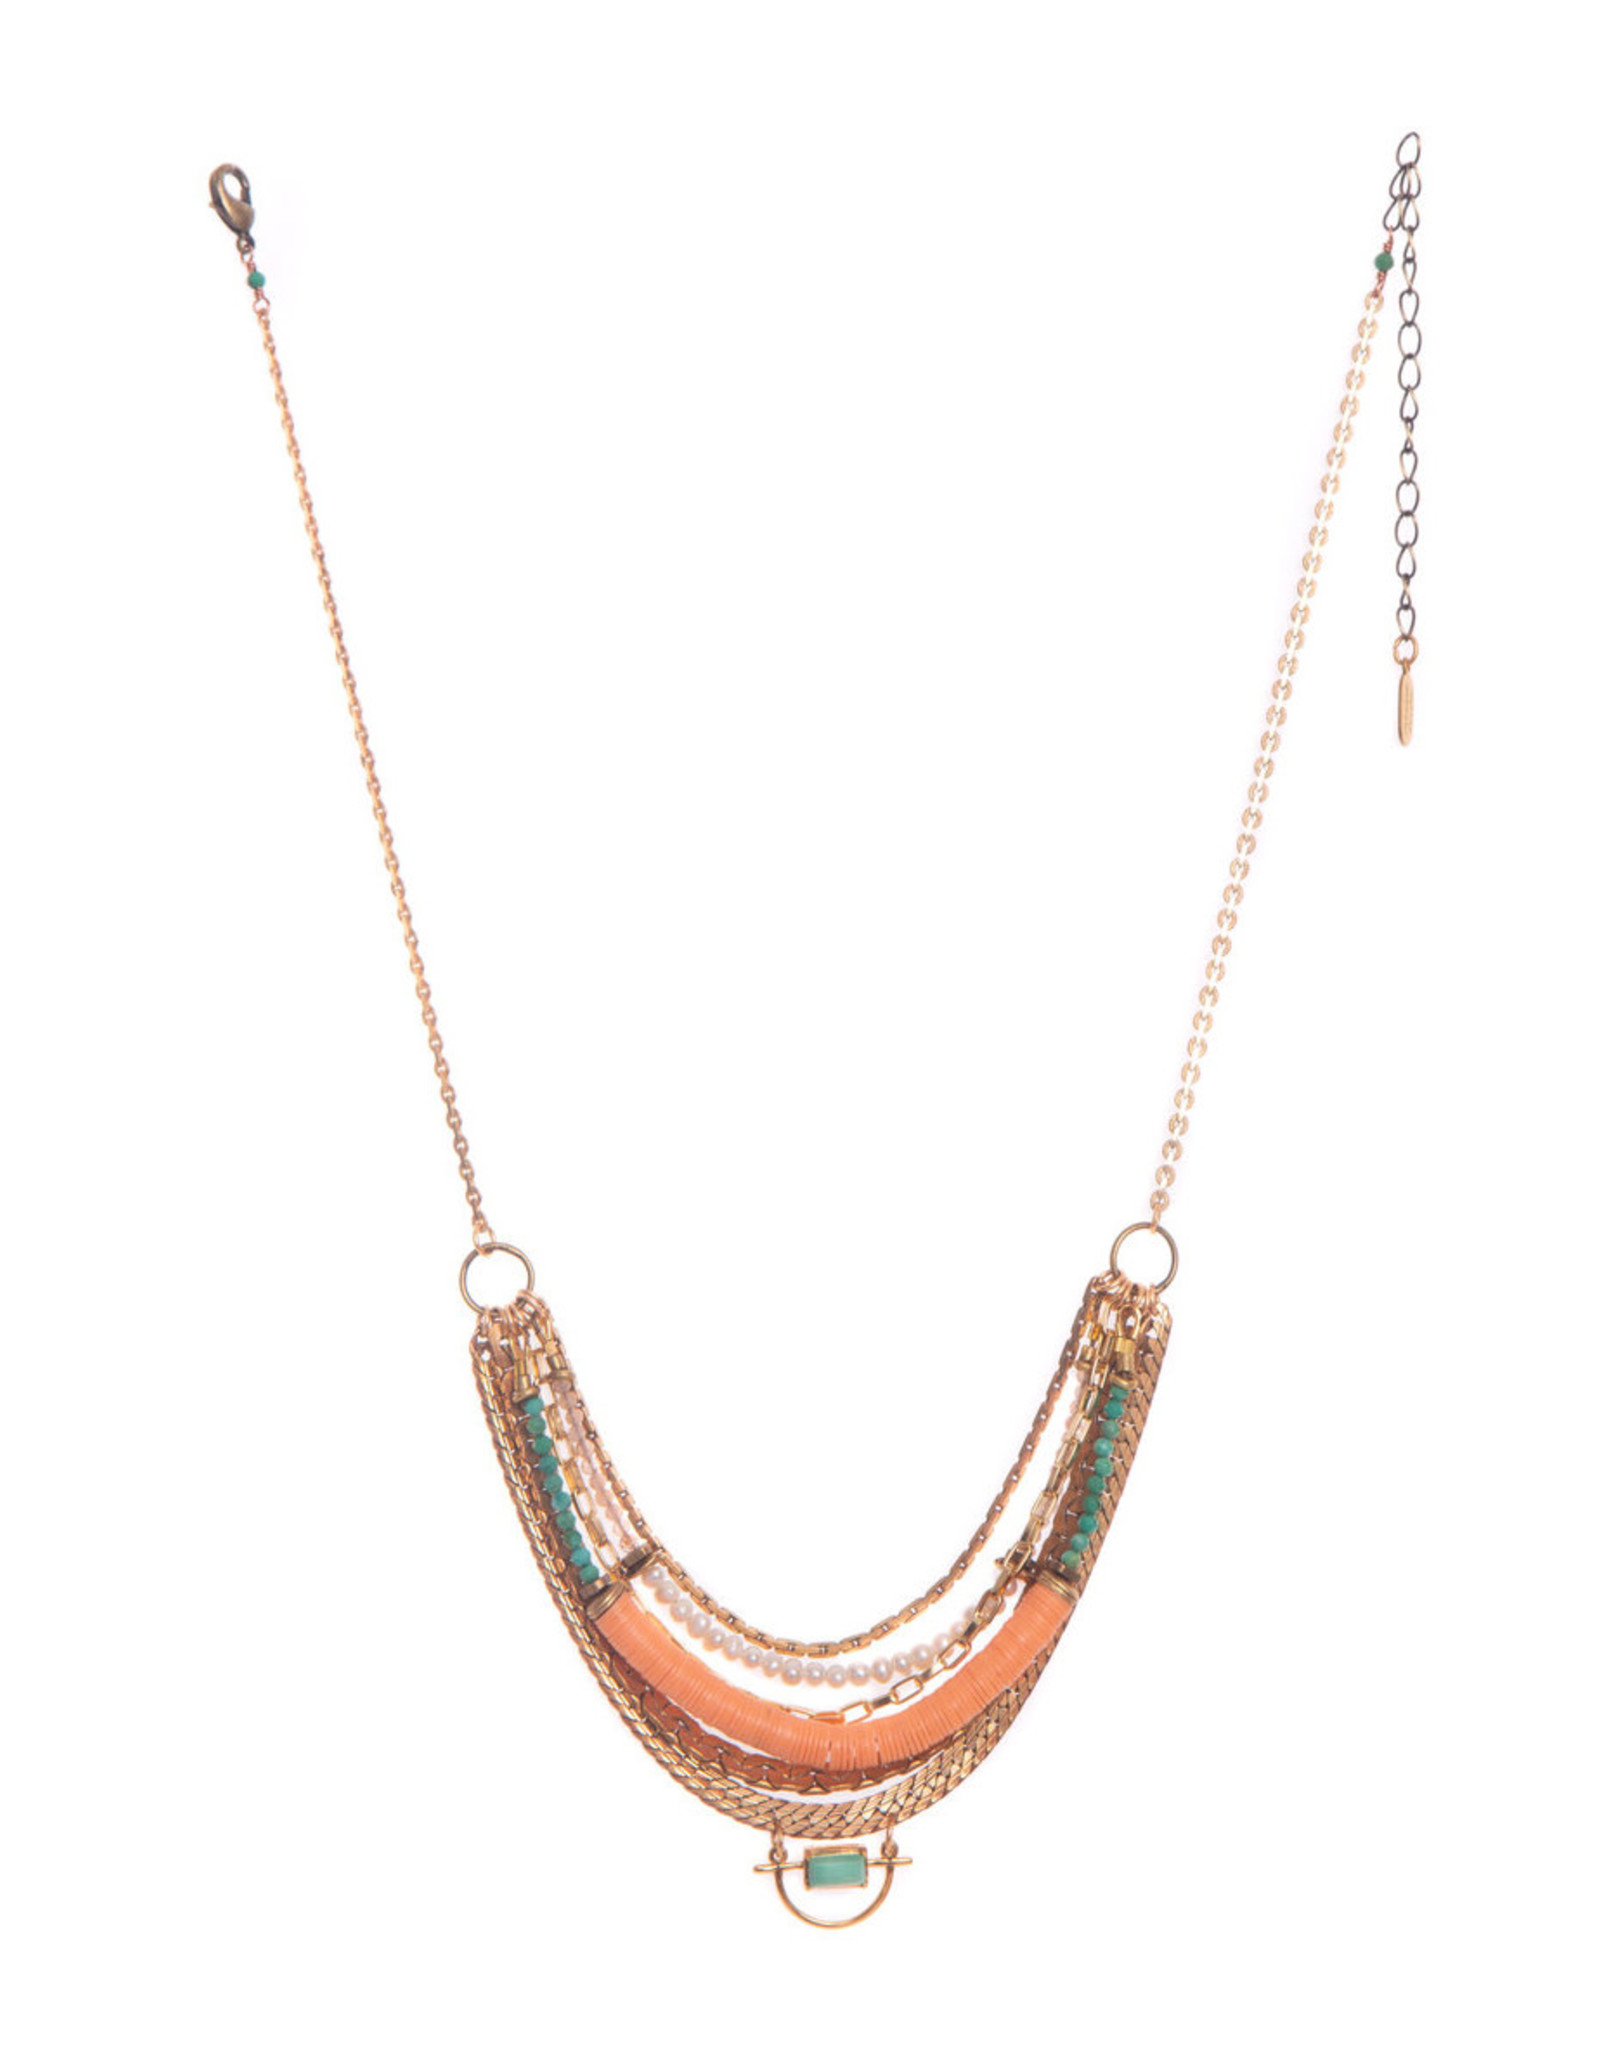 Hailey Gerrits Designs Malta Necklace - Green Turquoise